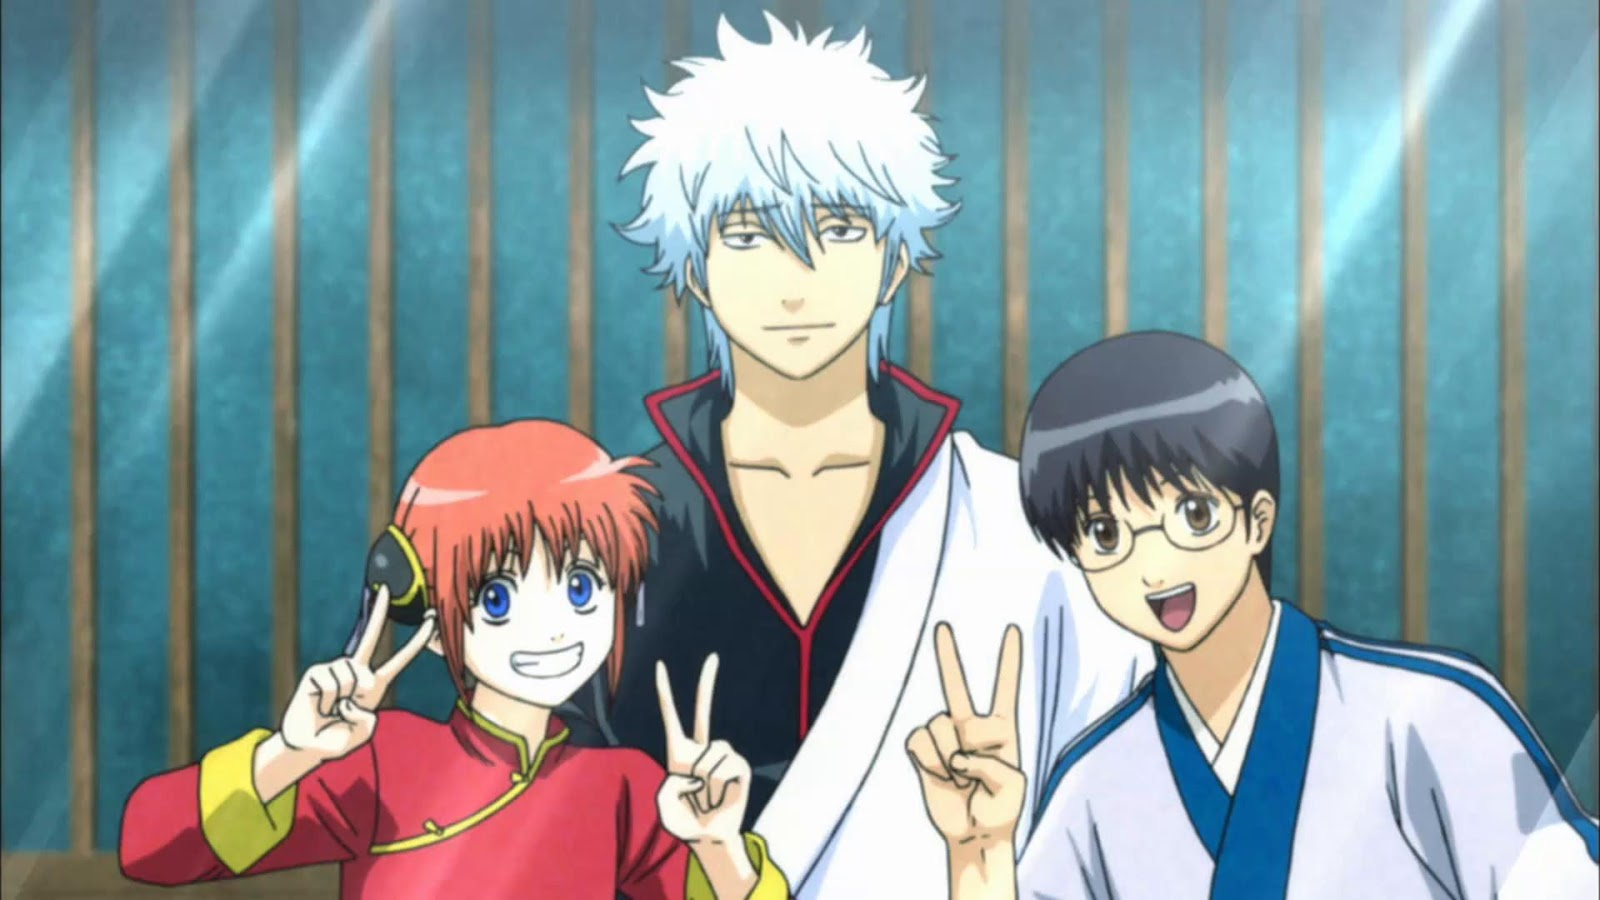 Gintama Rakuyo Anime Arc Teases Major Announcement In The Next Episode.